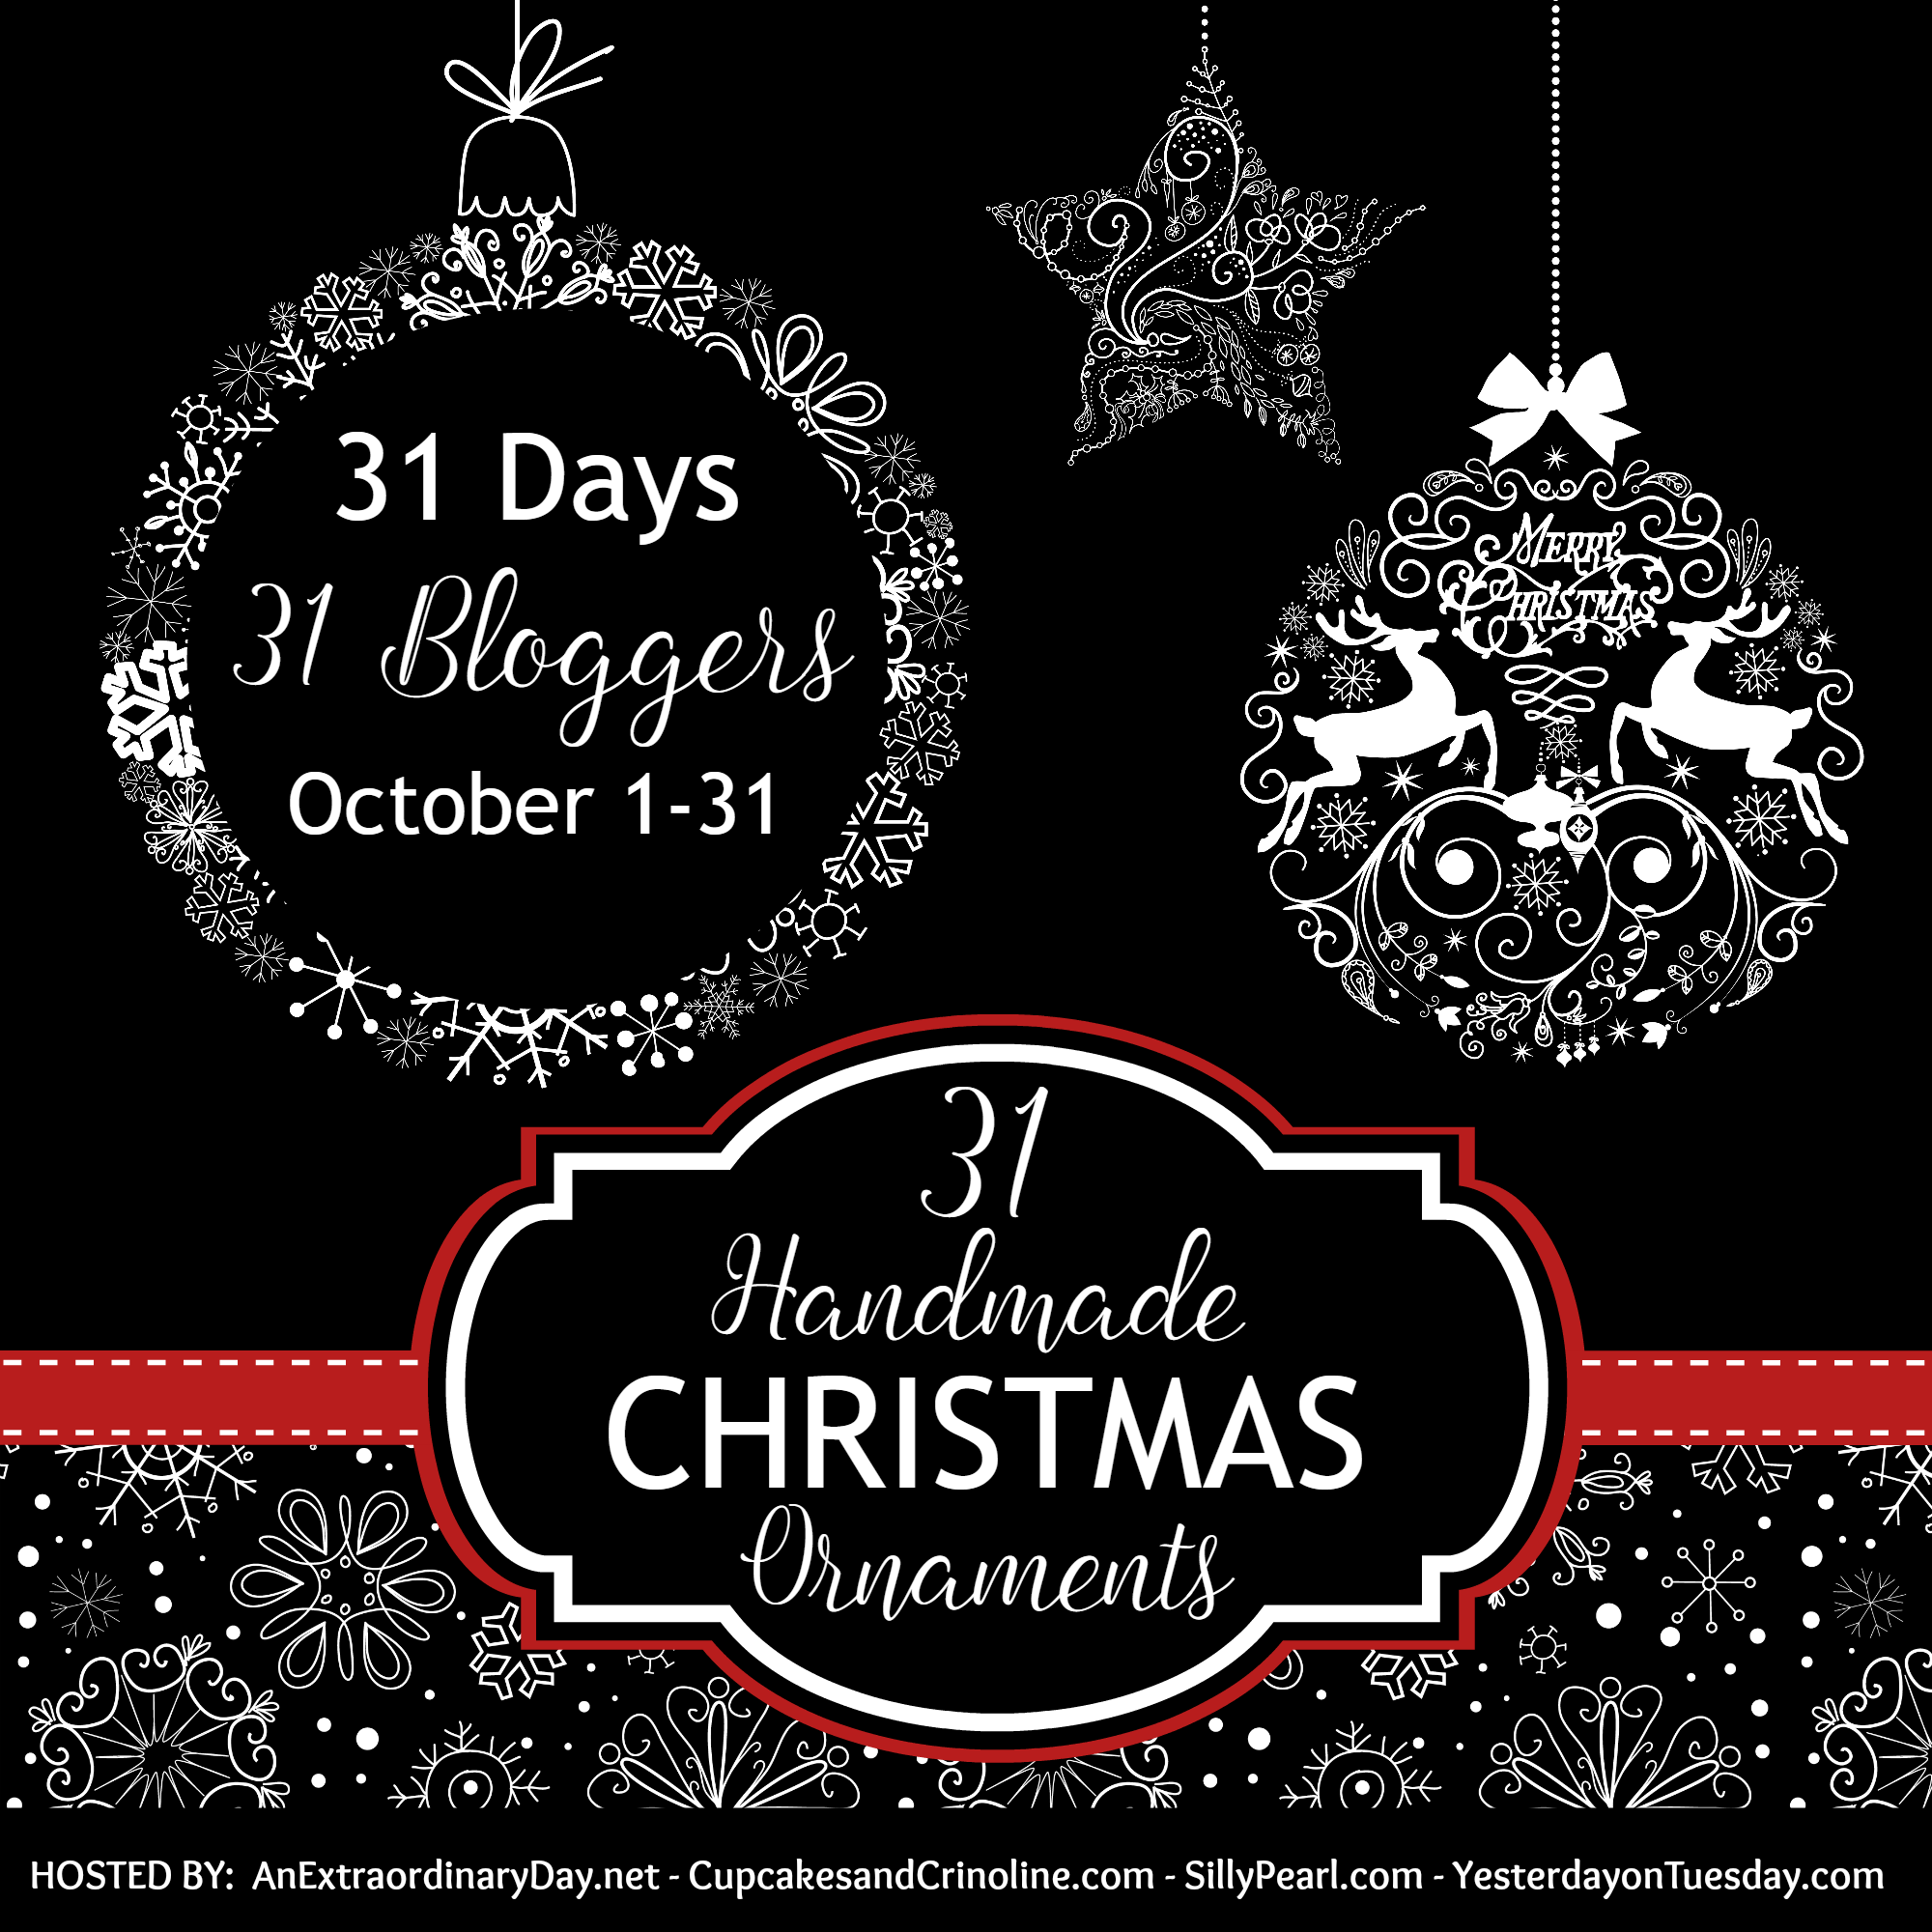 31-days-31-bloggers-31-handmade-christmas-ornaments-blog-hop-october-1-31-2016-anextraordinaryday-net